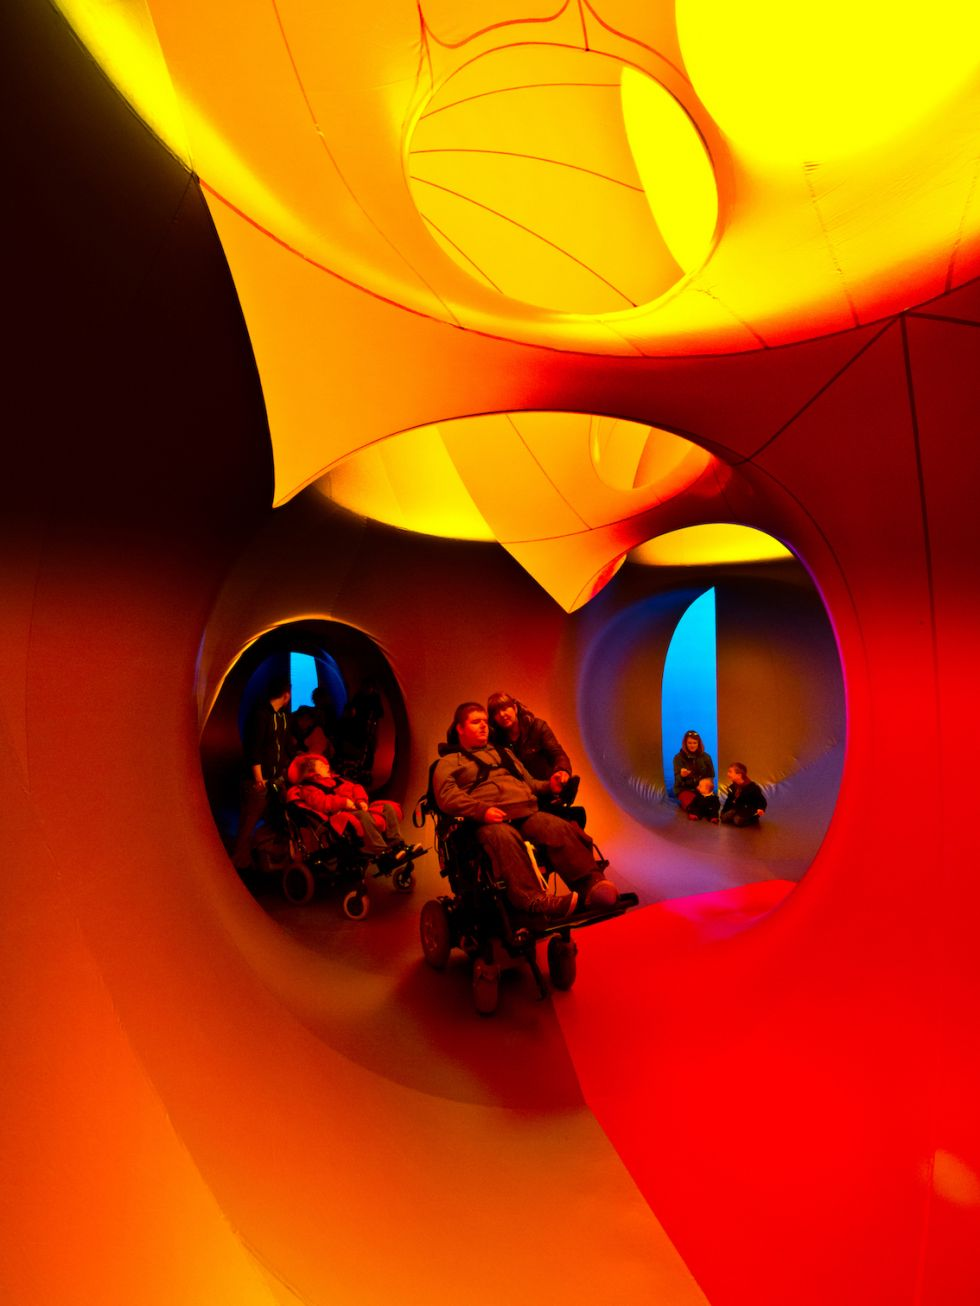 Dodecalis Luminarium is wheelchair accessible.